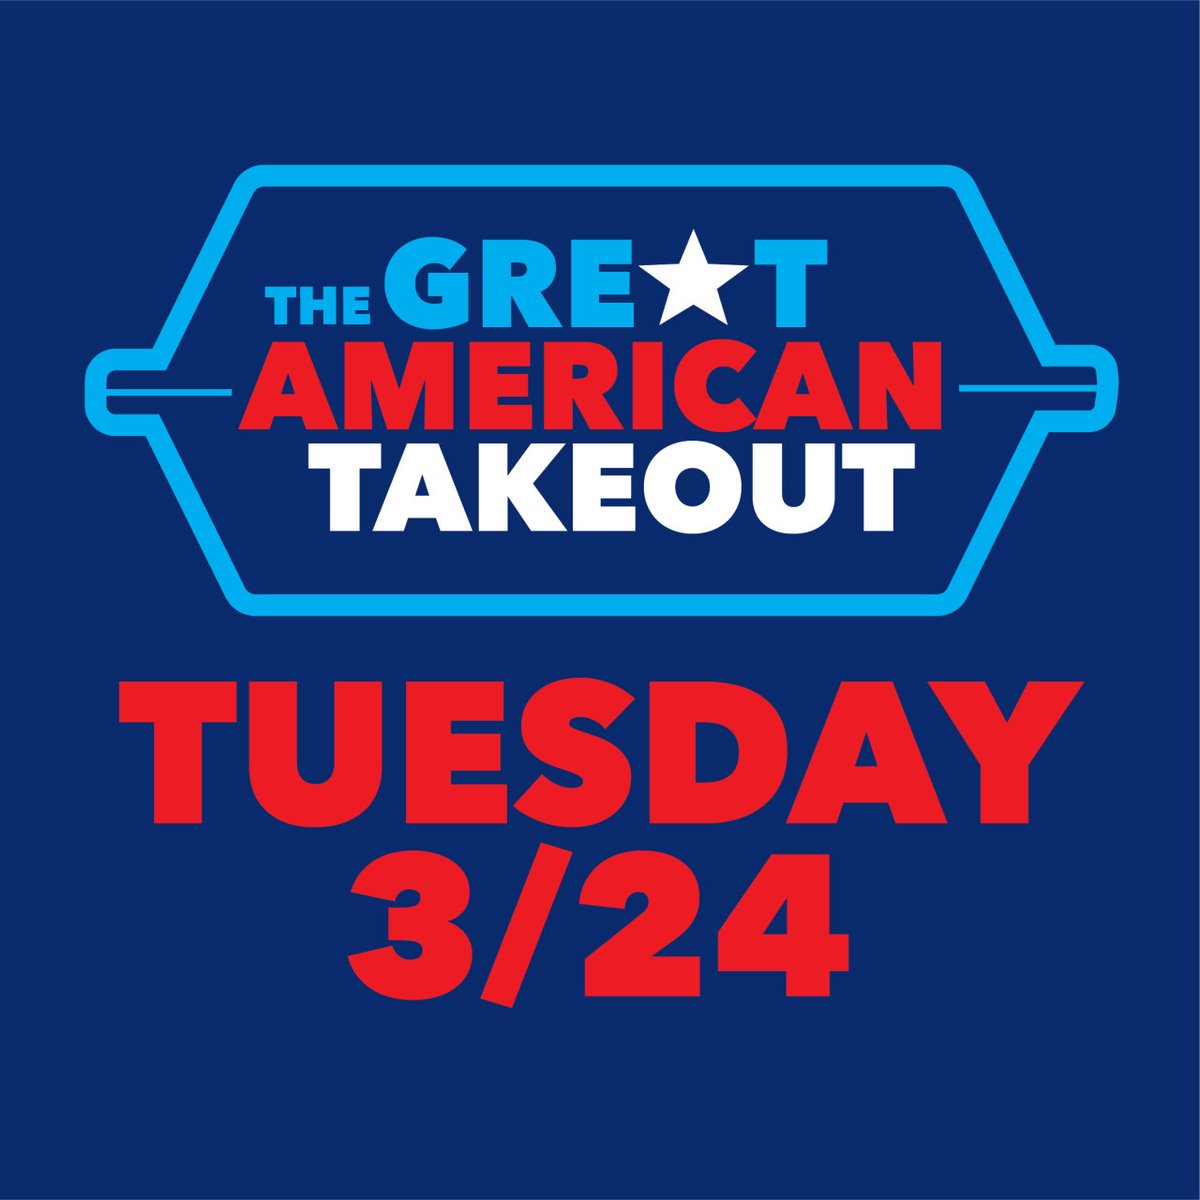 Support our local restaurant industry by joining #TheGreatAmericanTakeout and eating a delivery or pick-up meal on Tuesday, March 24. (And feel free to order takeout tonight, too!) https://t.co/EnhAvCQQMW